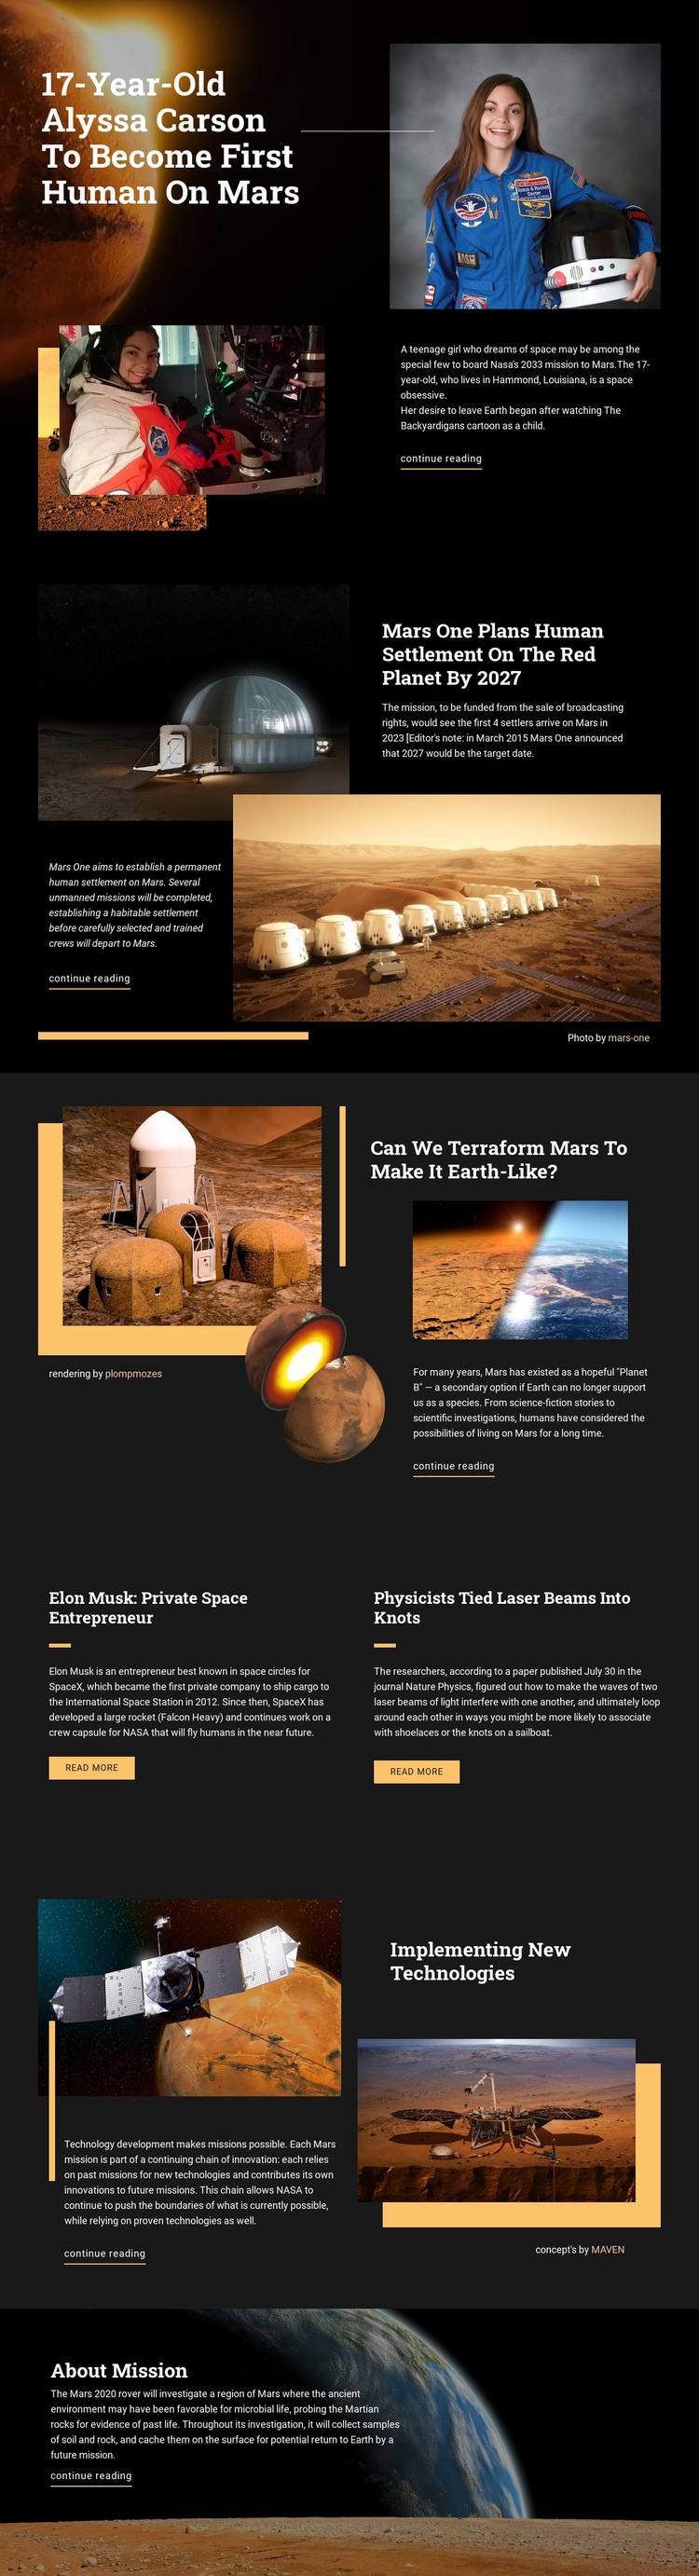 First Human On Mars Web Page Design